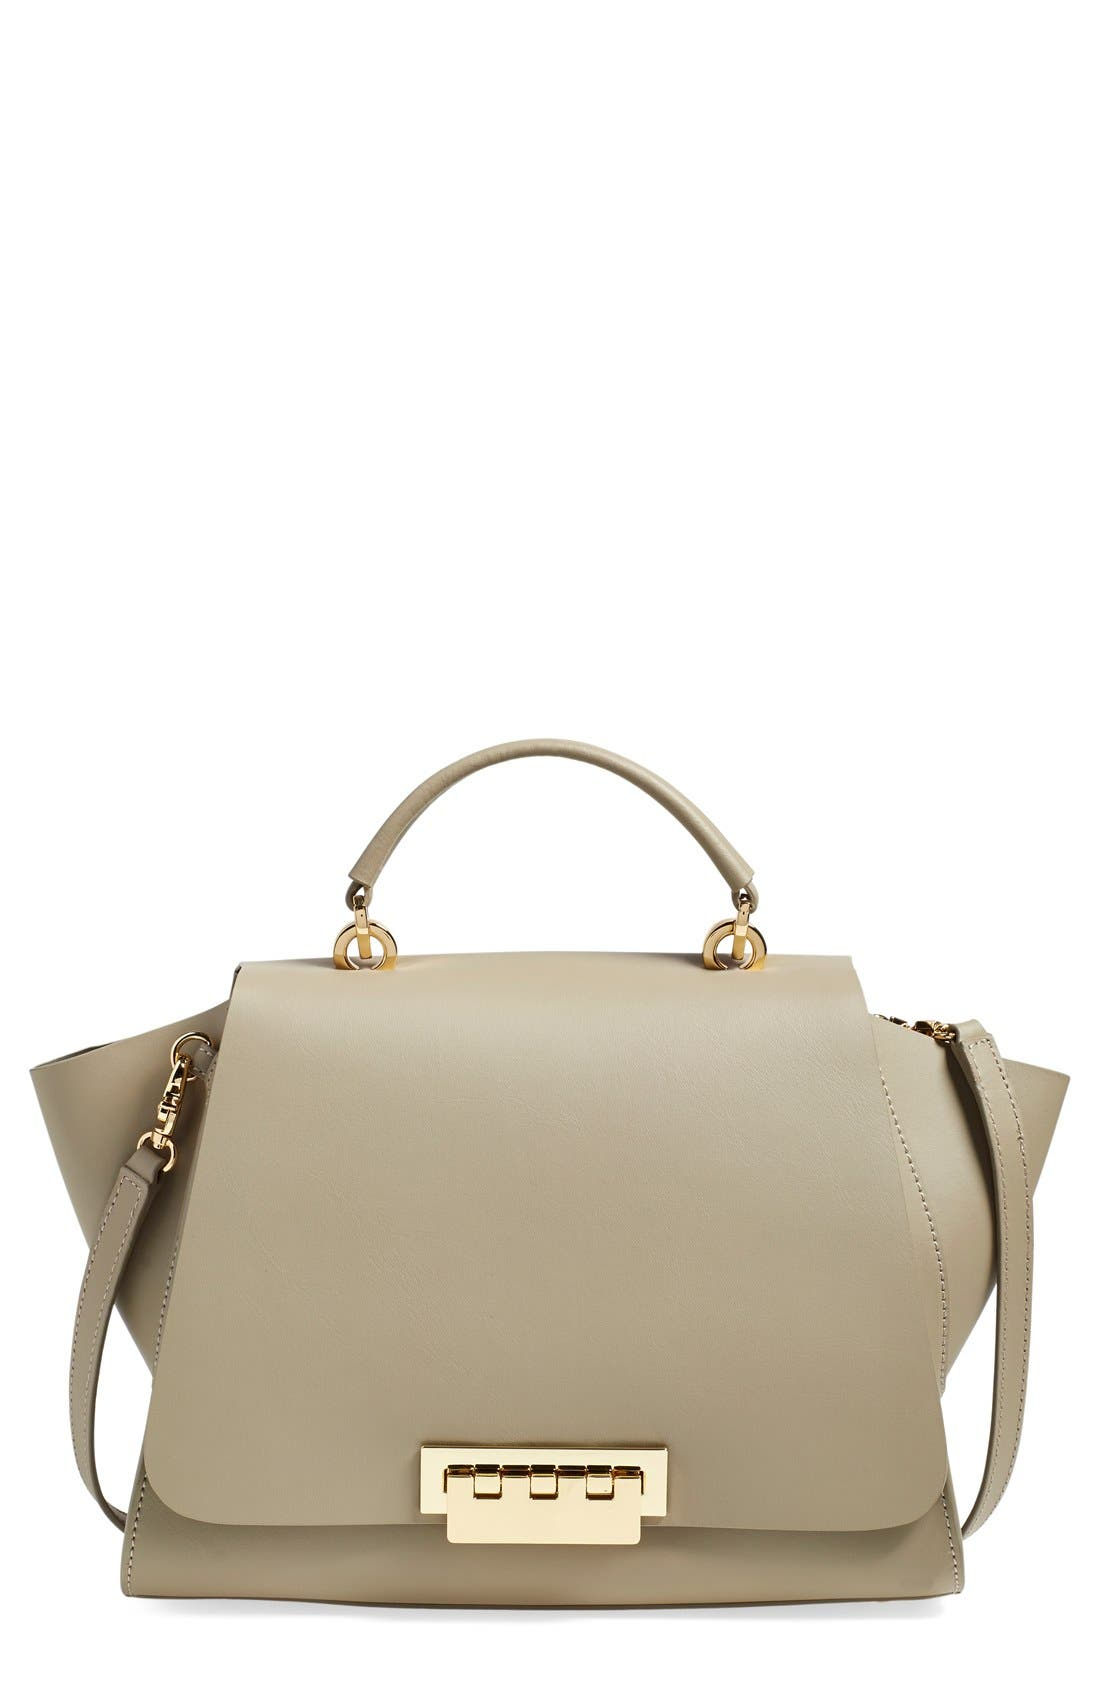 'Eartha' Soft Top Handle Satchel,                             Main thumbnail 1, color,                             Beige